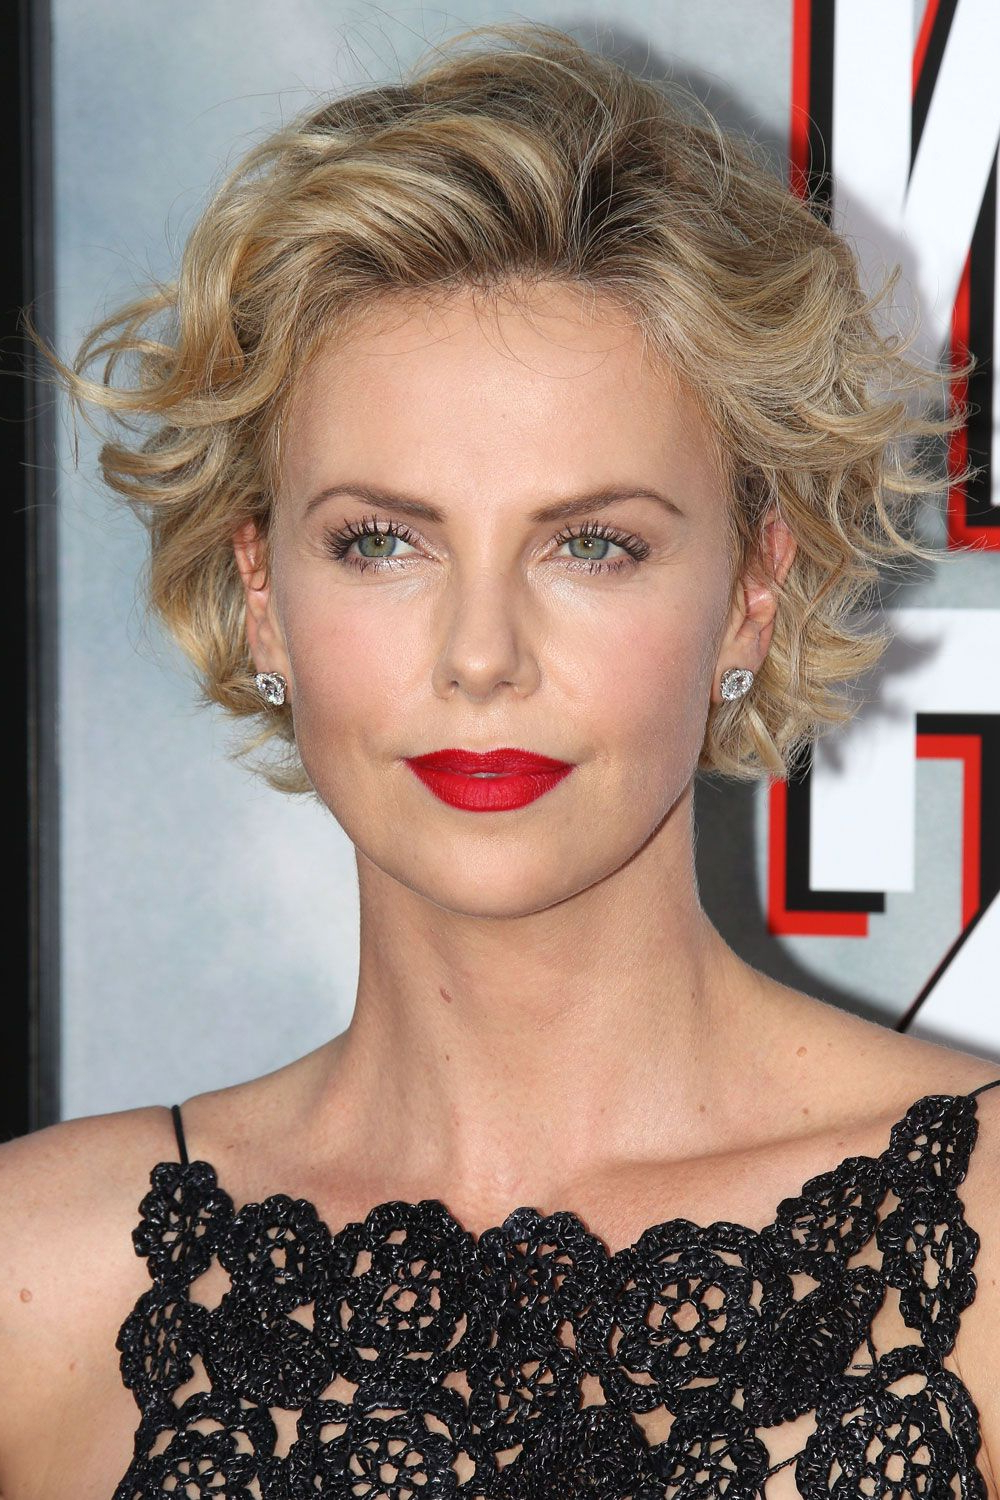 Short Hairstyles: Your A List Inspiration   Hairstyle   Pinterest Inside Charlize Theron Short Haircuts (View 22 of 25)